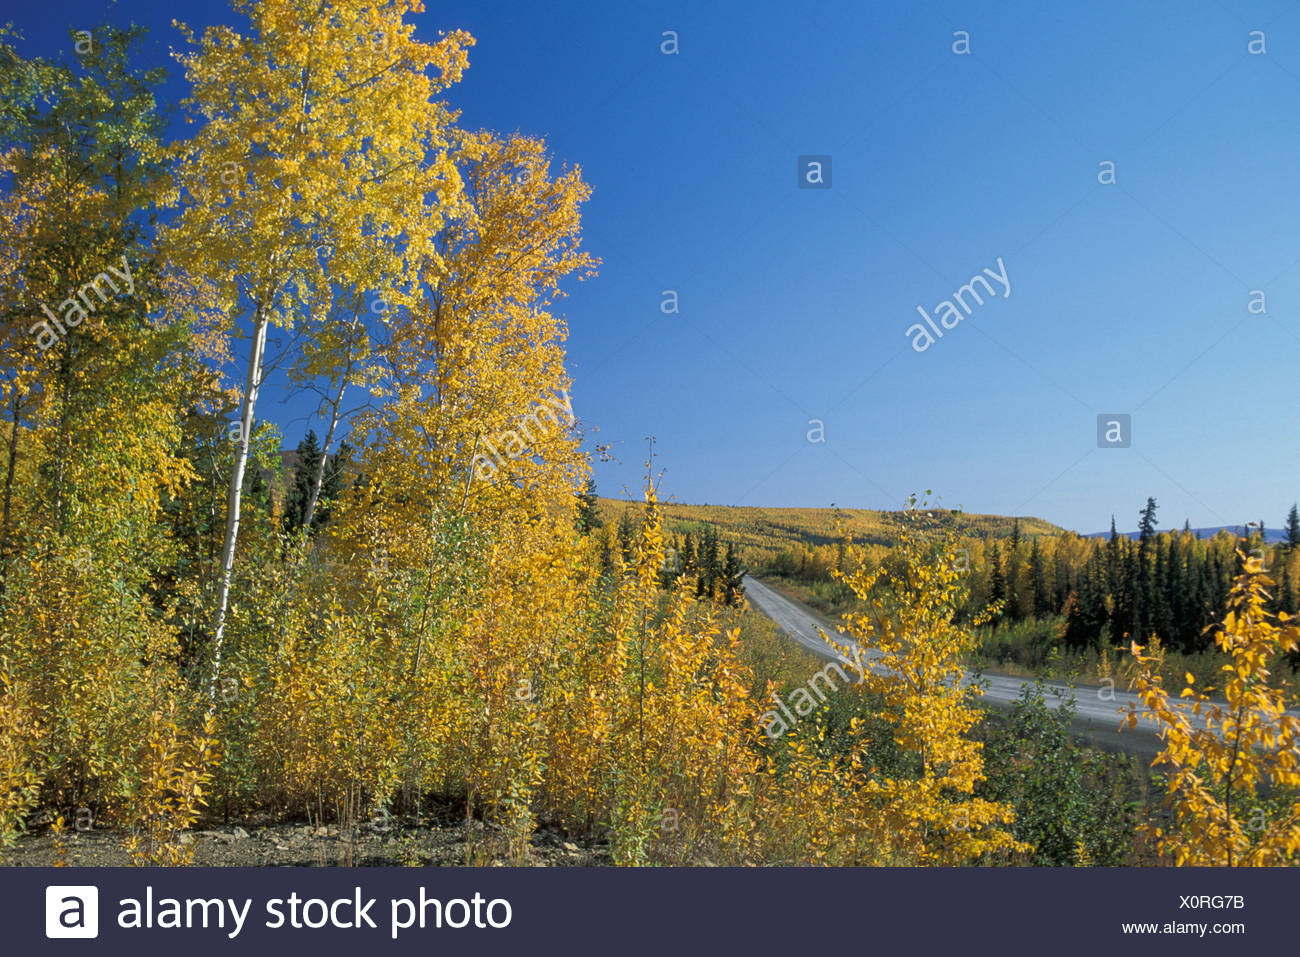 White Mountains, BEI, Livengood, Alaska, USA, fall, autumn, trees, yellow, colorful, highway, clear sky, open - Stock Image